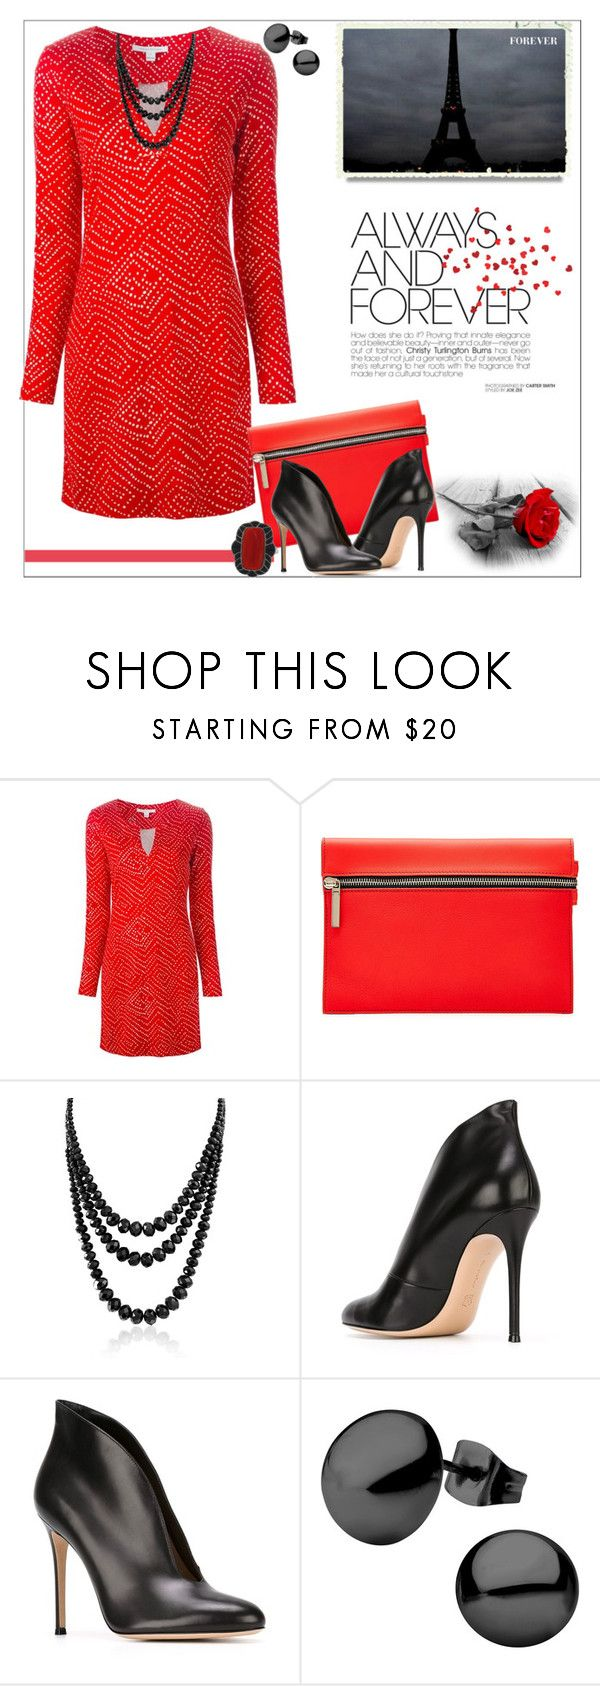 """""""Always and Forever_Red Dress"""" by msmith801 ❤ liked on Polyvore featuring Diane Von Furstenberg, Victoria Beckham, Bling Jewelry, Gianvito Rossi, women's clothing, women's fashion, women, female, woman and misses"""